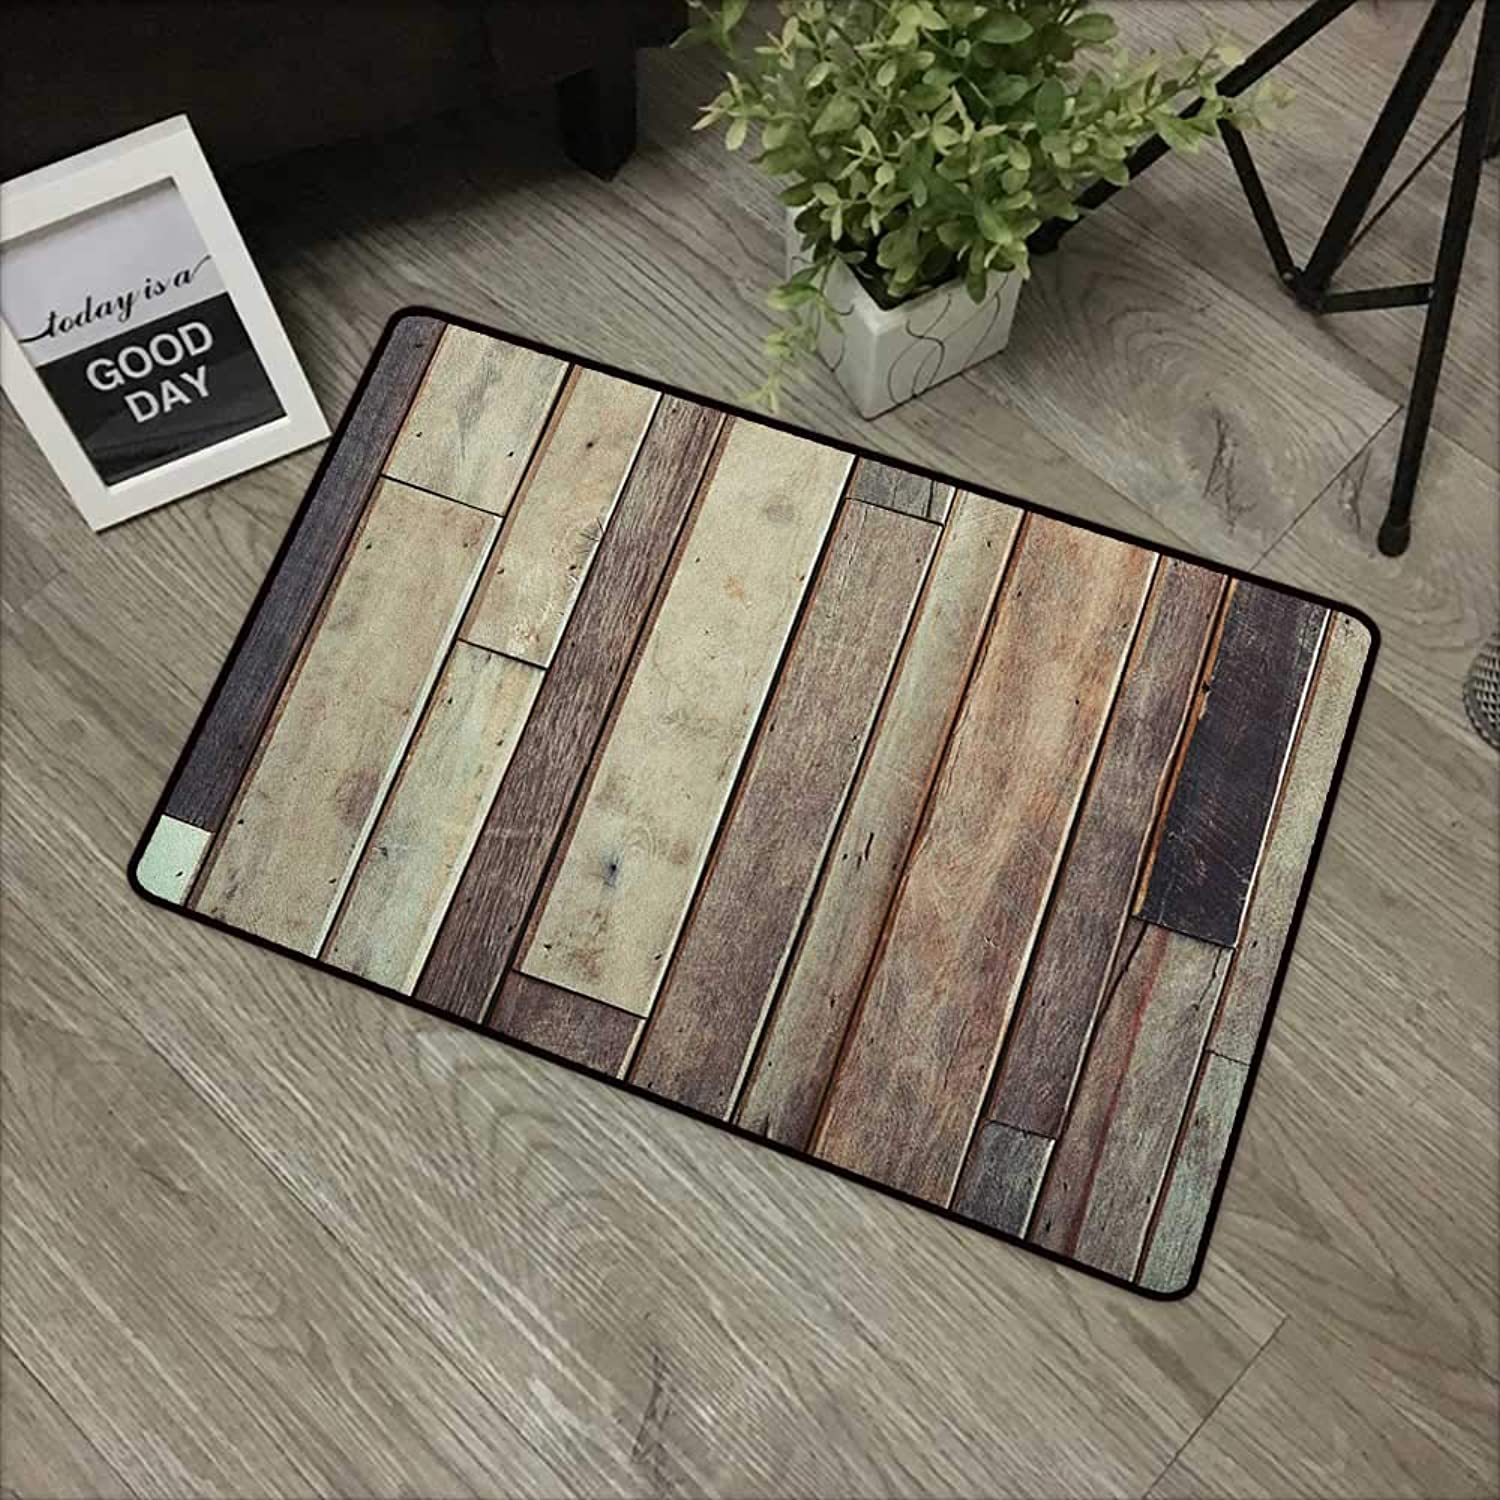 Door mat W35 x L59 INCH Wooden,Antique Planks Flooring Wall Picture American Style Western Rustic Panel Graphic Print, Brown with Non-Slip Backing Door Mat Carpet